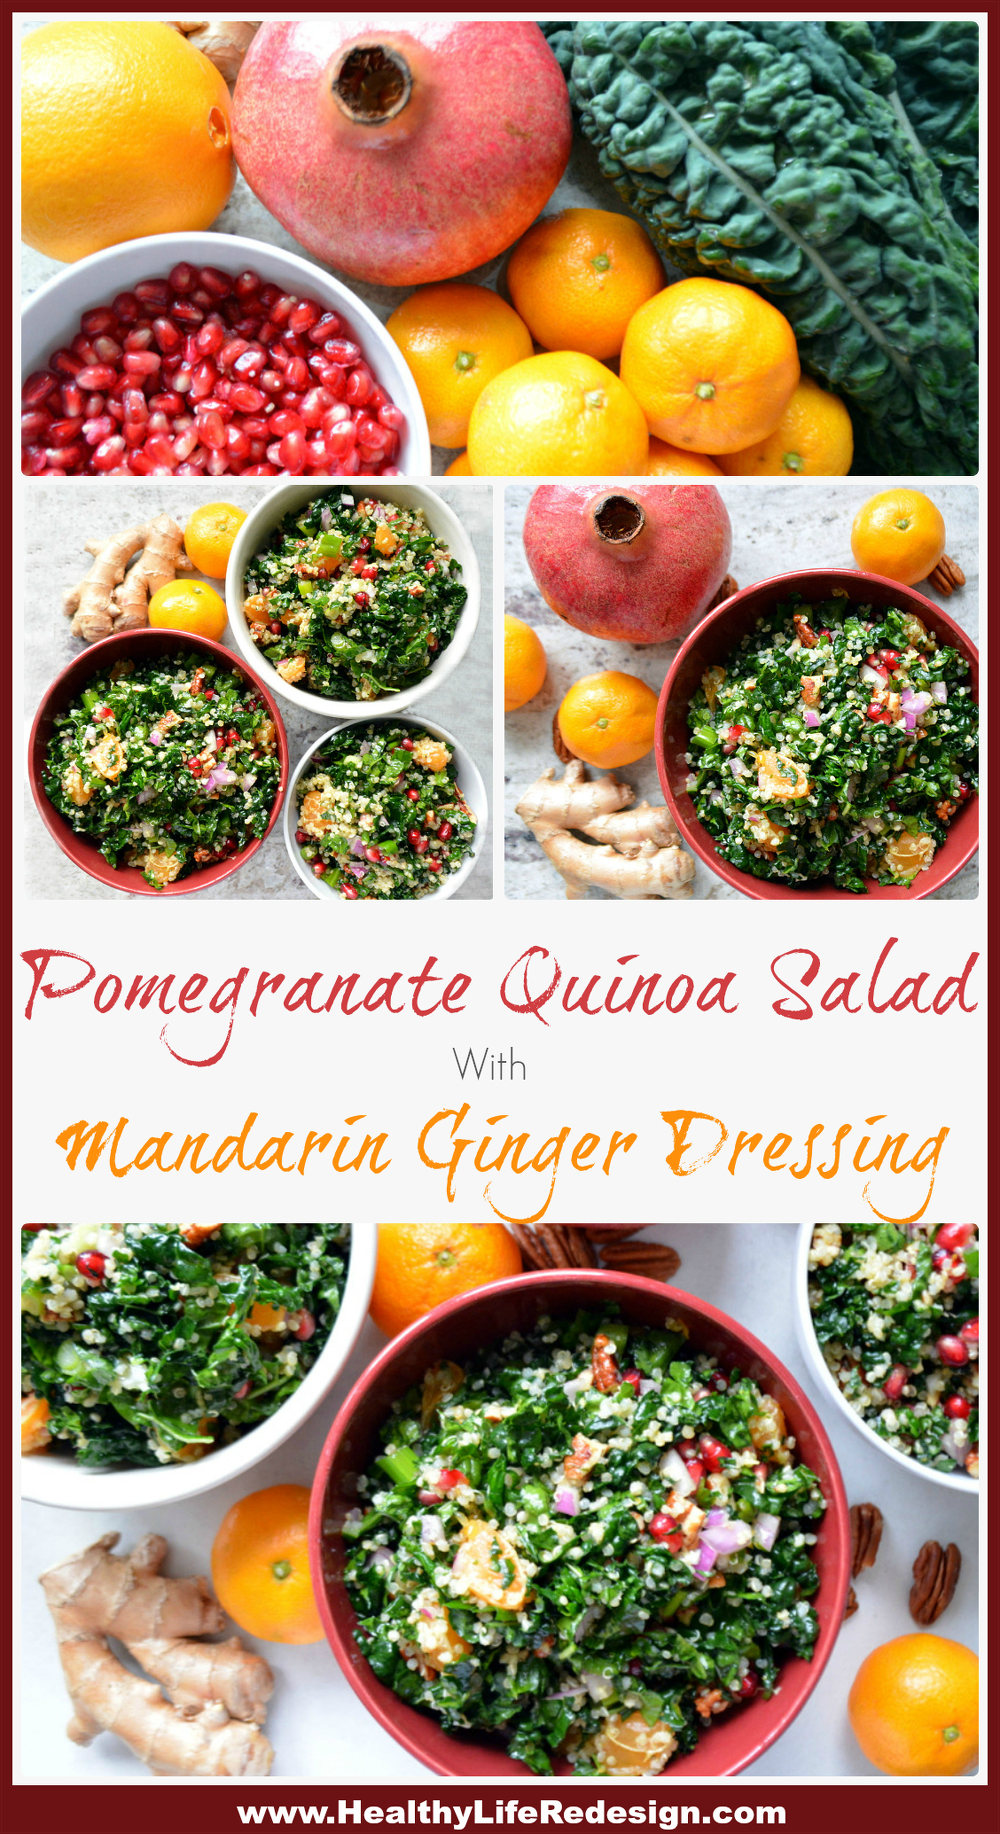 Festive Pomegranate Quinoa Salad with Mandarin Ginger Dressing - The perfect healthy lunch or holiday salad! Gluten and Dairy-Free!